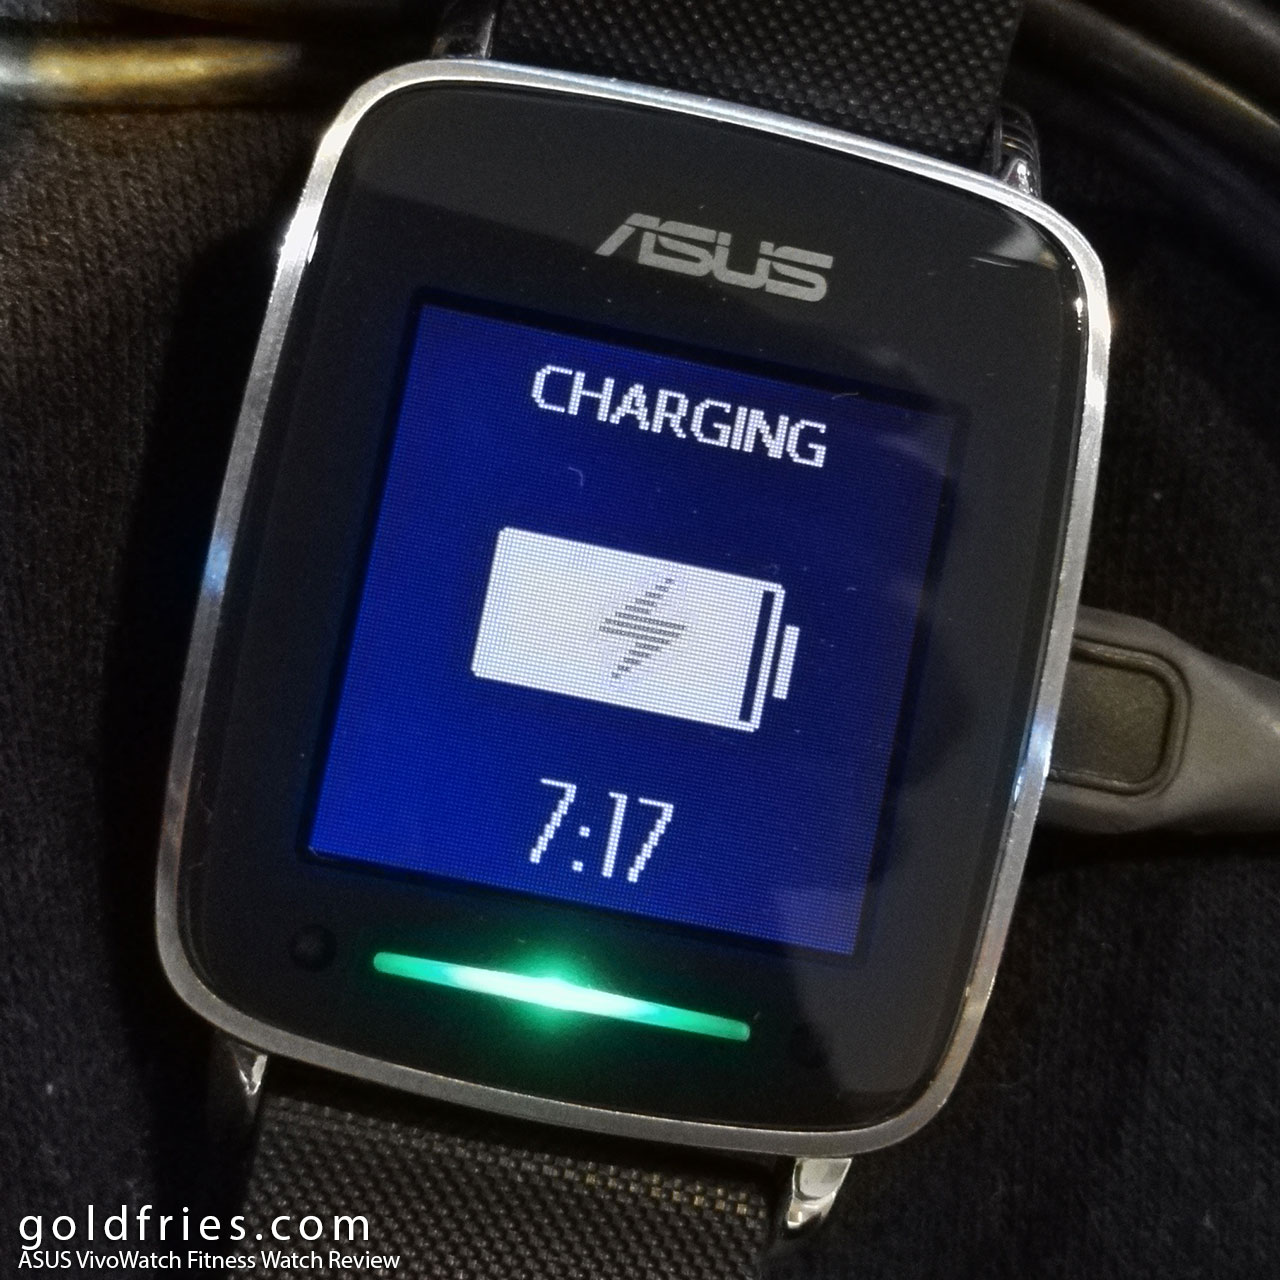 ASUS VivoWatch Fitness Watch Review